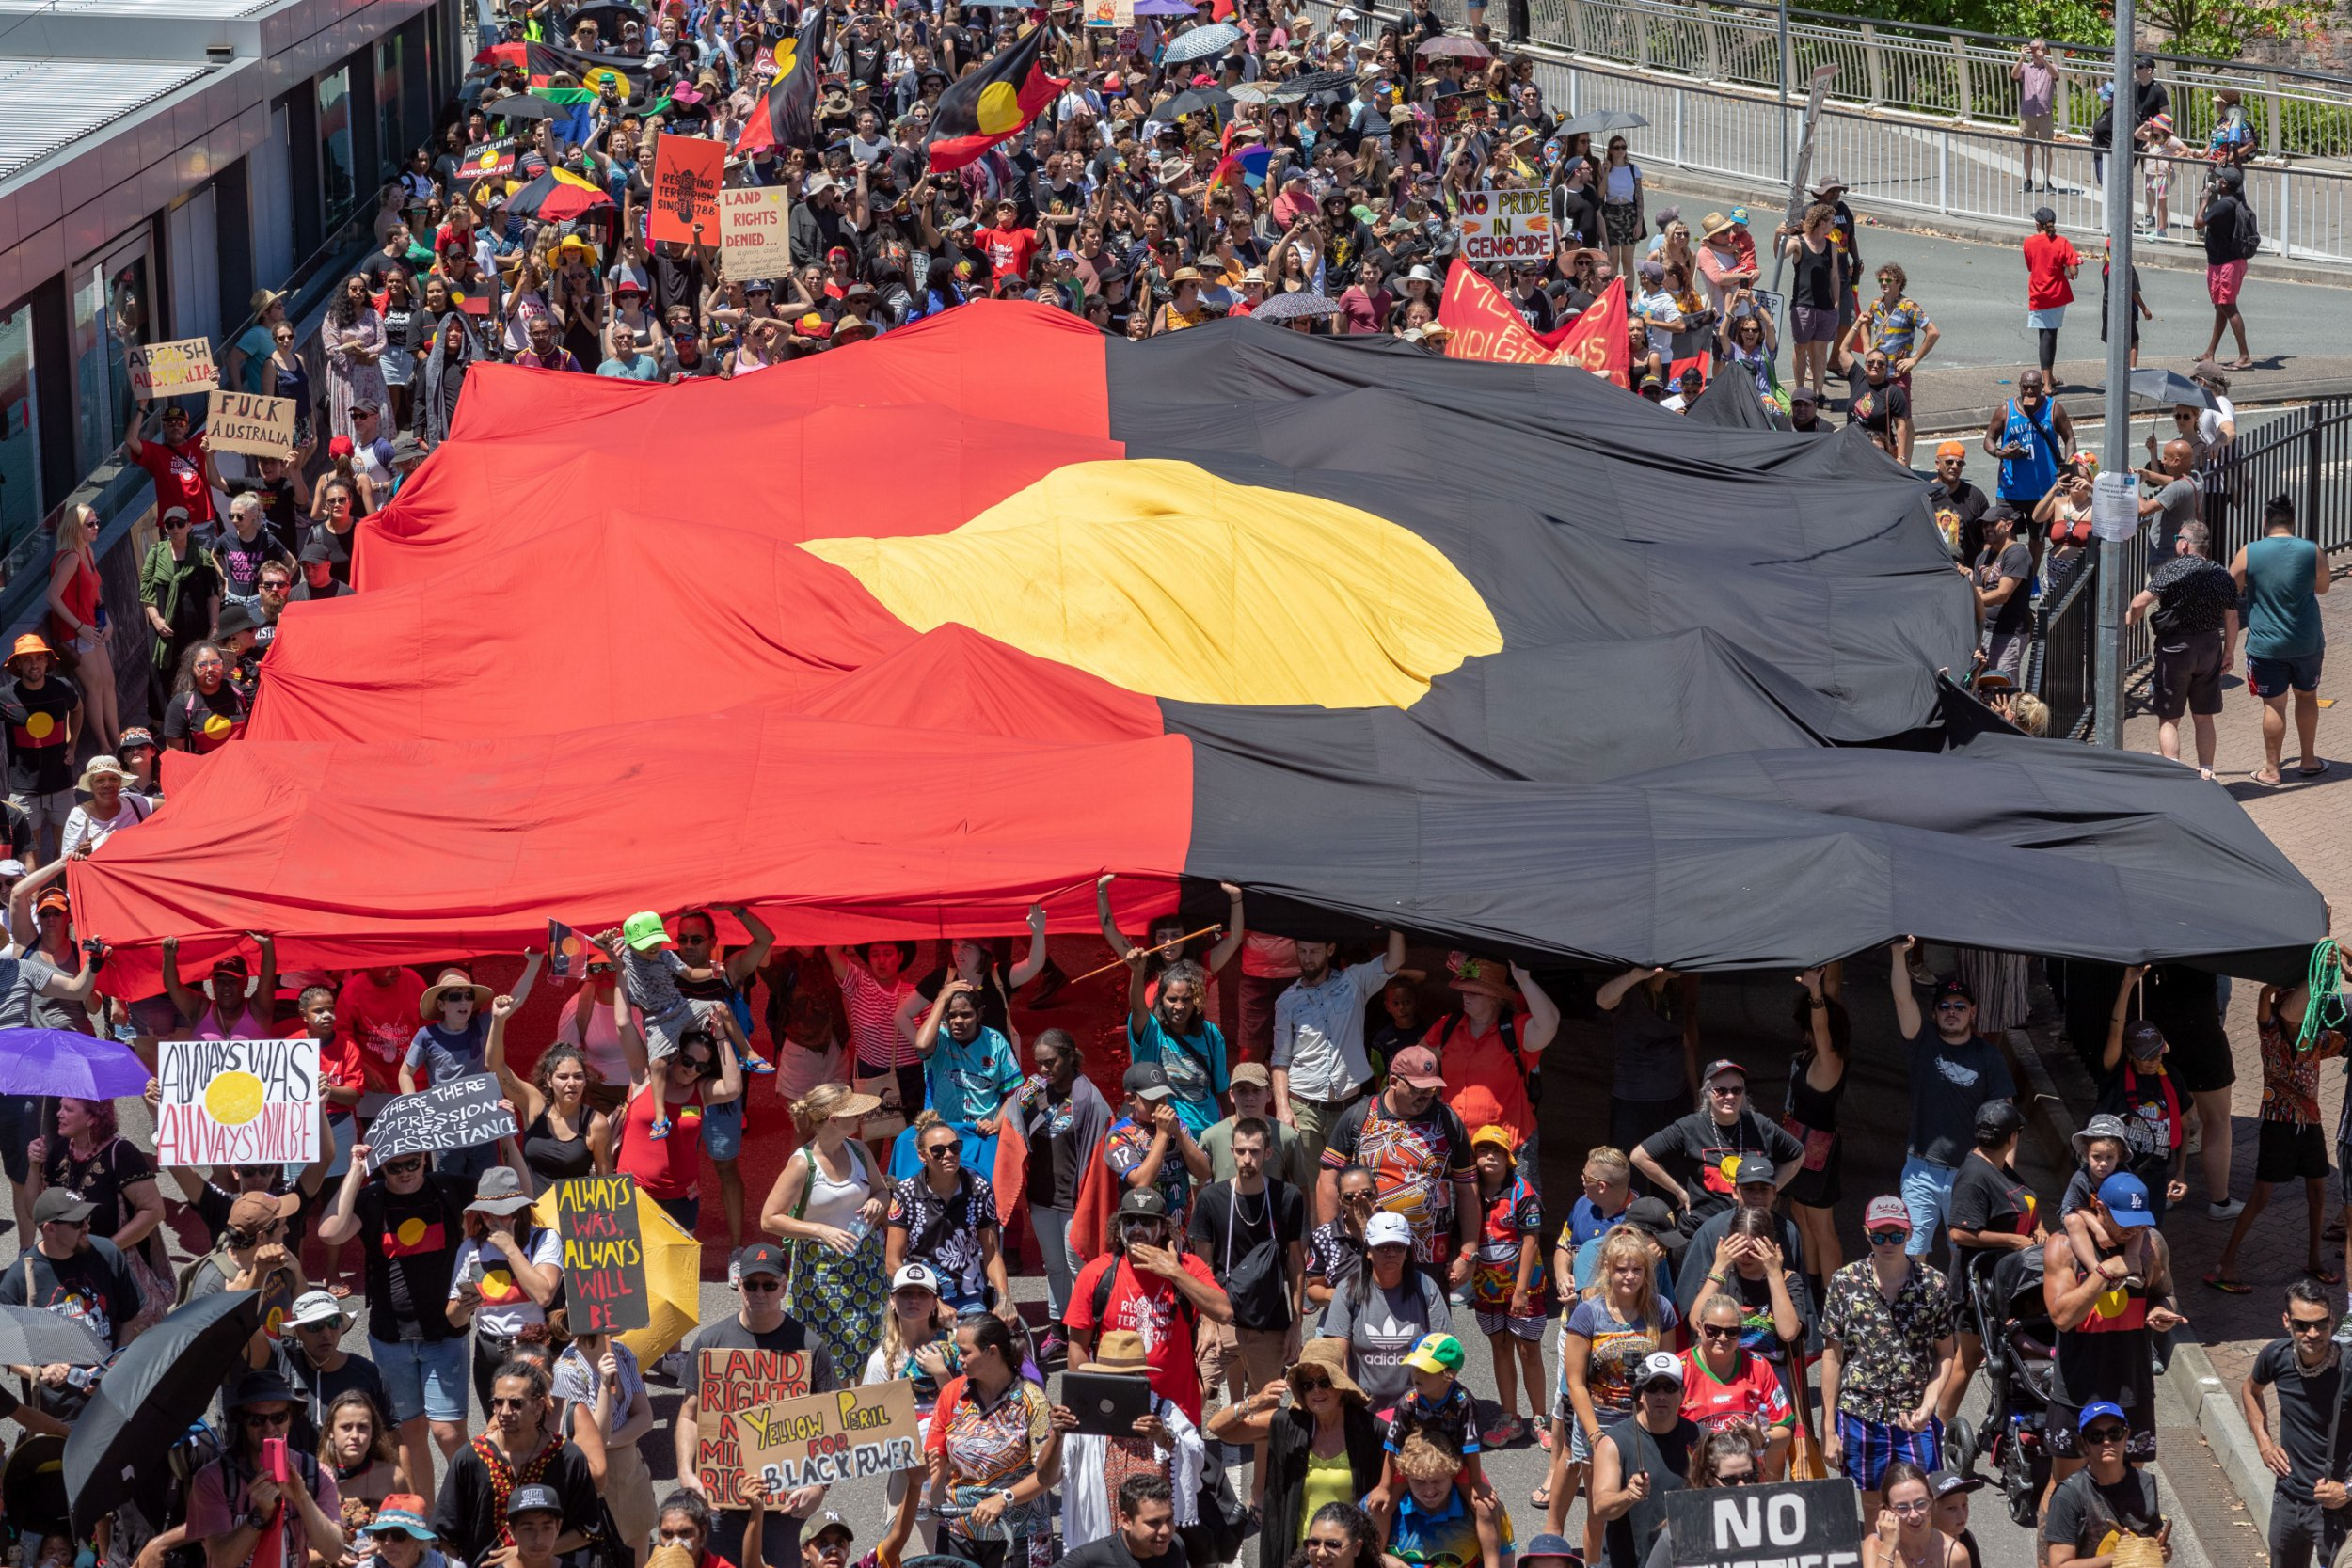 epa07320923 Invasion Day protesters are seen during the Australia Day celebrations in Brisbane, Queensland, Australia, 26 January 2019. Australia Day is the official national day of Australia, marking the anniversary of the First Fleet's arrival in Port Jackson, New South Wales on 26 January 1788. Some indigenous groups commemorate the 26 January as the invasion of their land by Europeans. EPA/GLENN HUNT AUSTRALIA AND NEW ZEALAND OUT